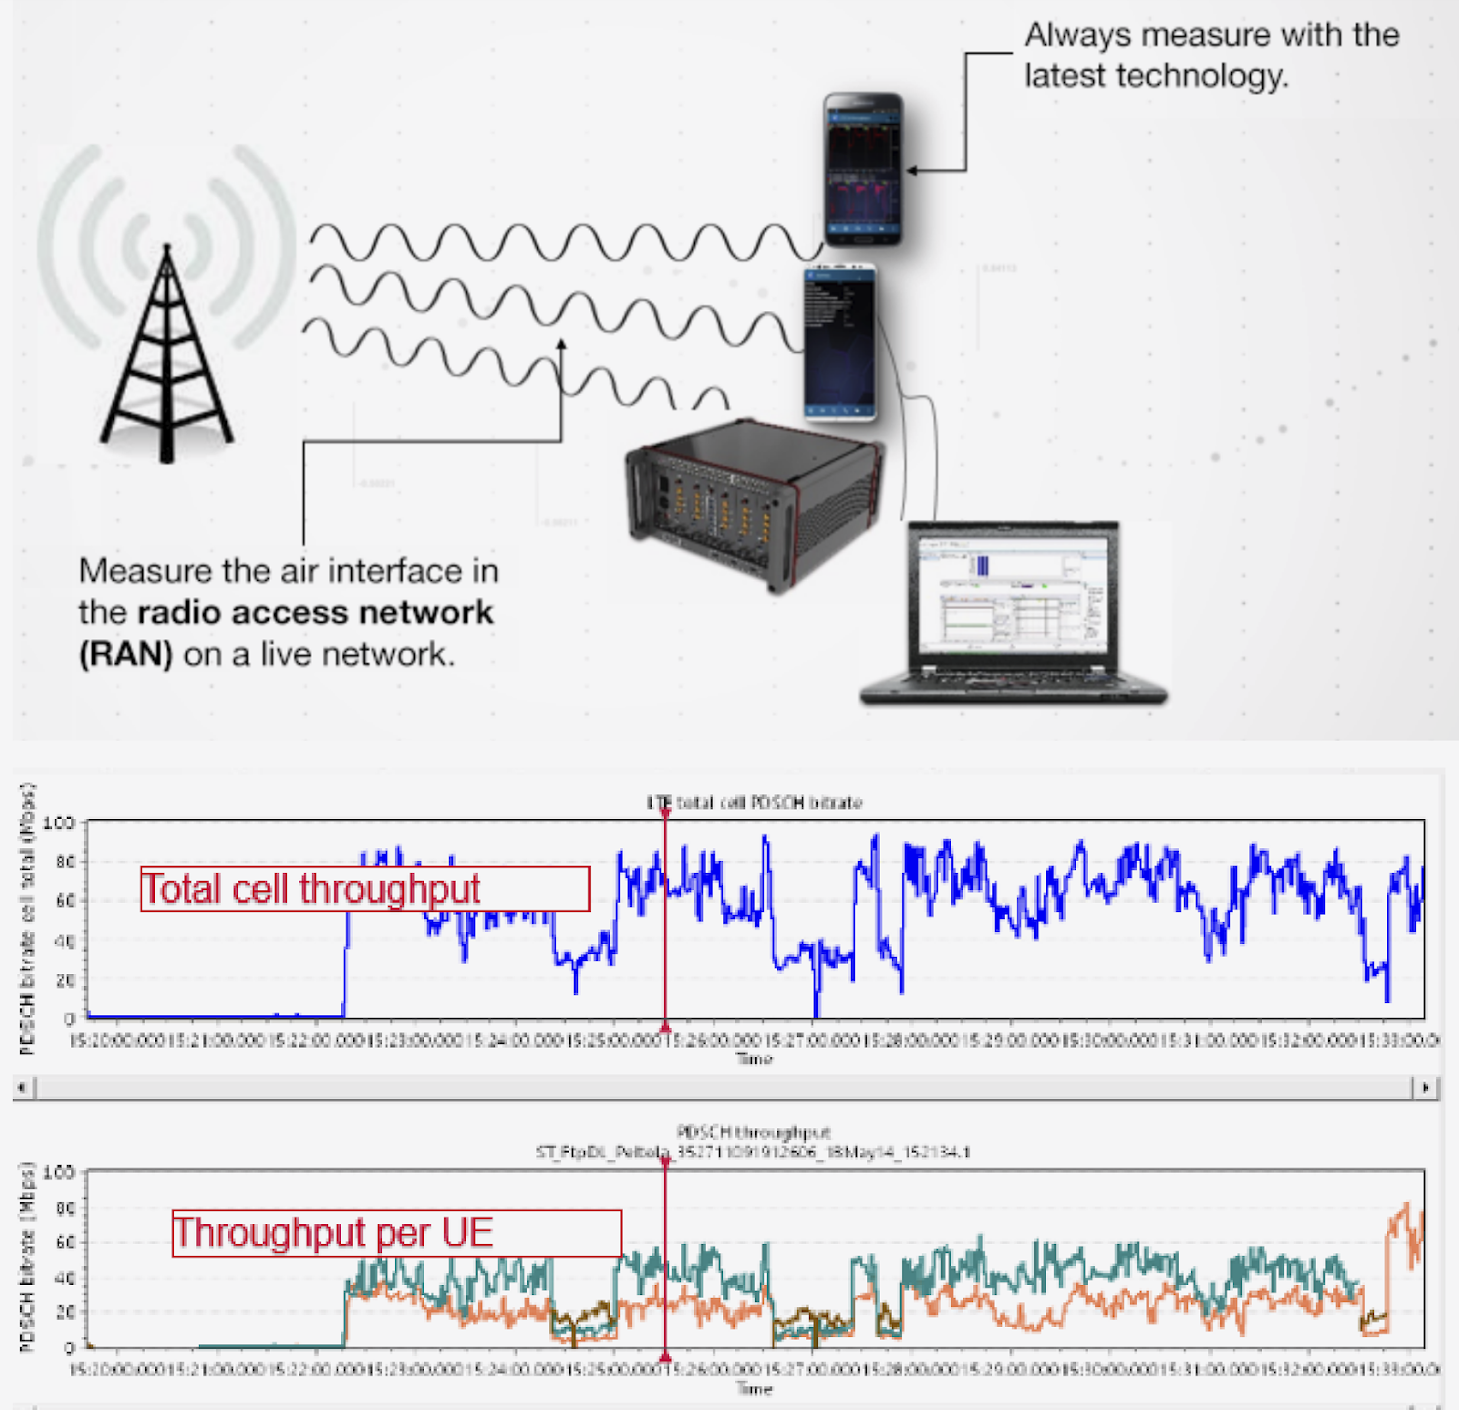 Figure 2. 5G NR-ready testing solution for massive MIMO with post-processing example showing throughput